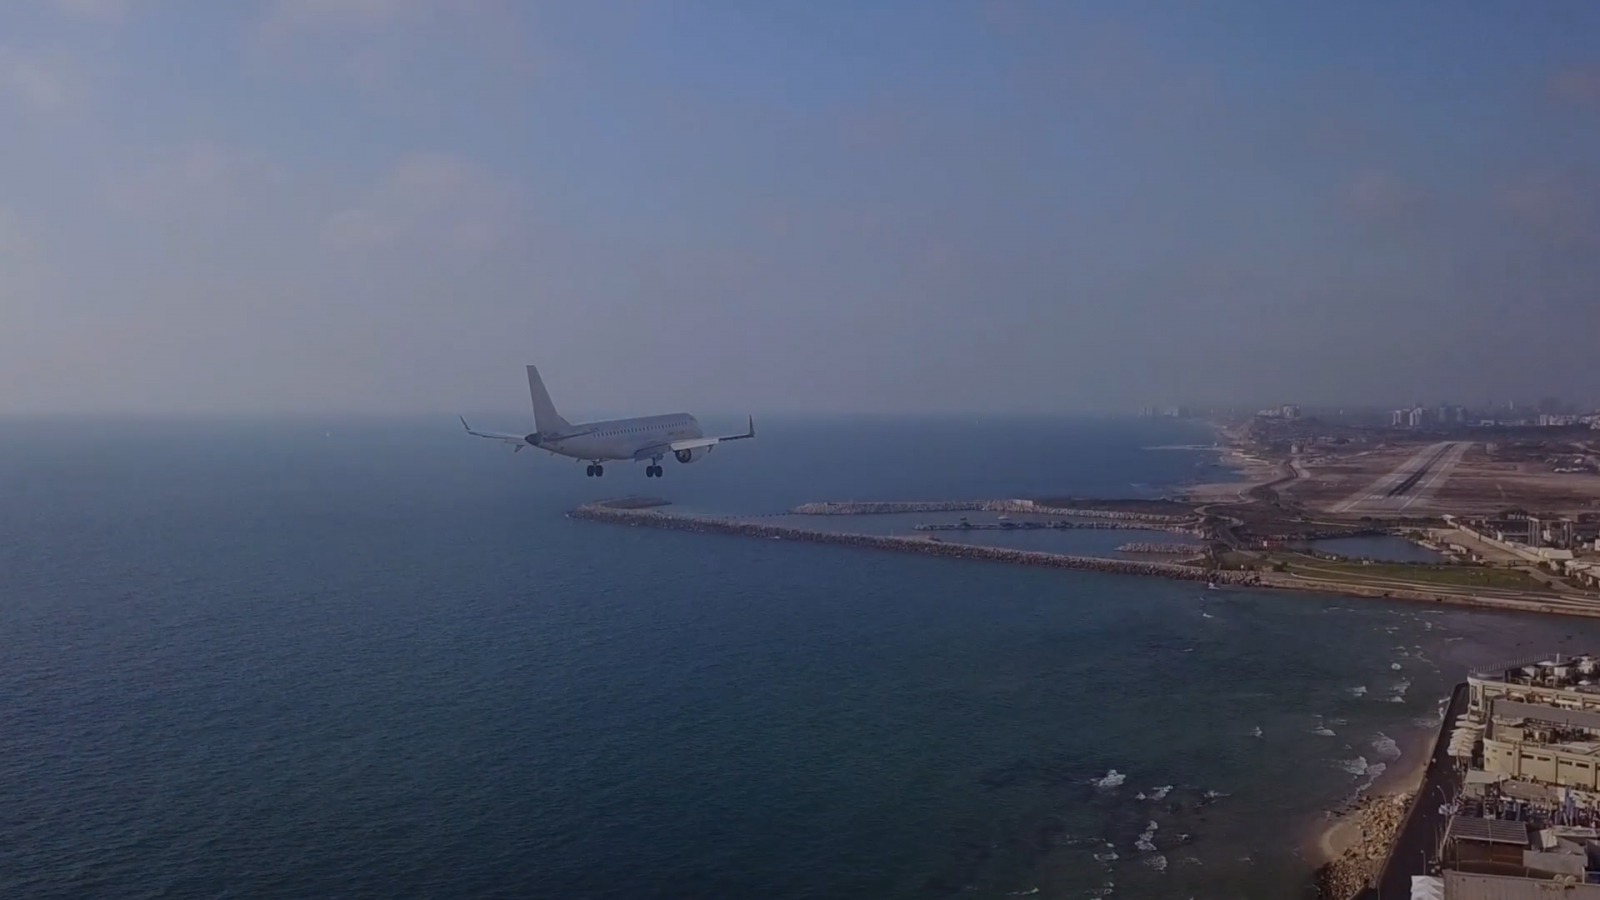 drone-enthusiast-arrested-for-flying-dji-drone-near-tel-aviv-airport-landing-strip